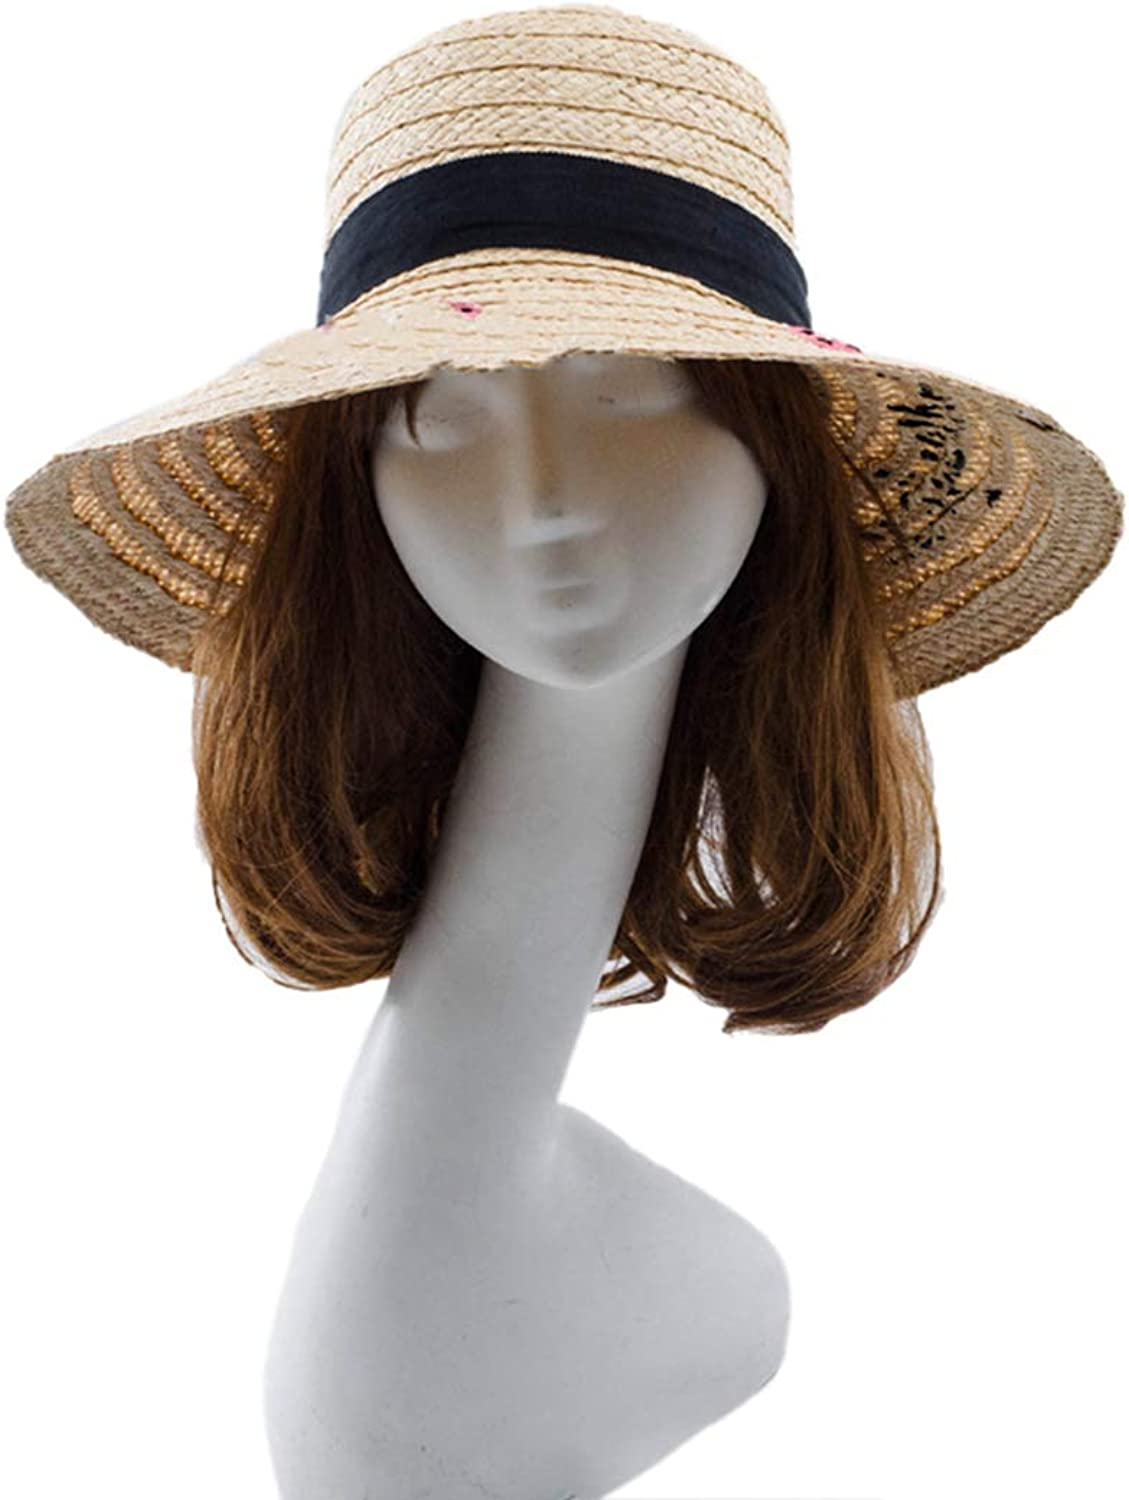 Nafanio Summer Embroidered Straw Hat Handmade Bow UV Predection Sunscreen Beach Floppy Sun Hats Caps